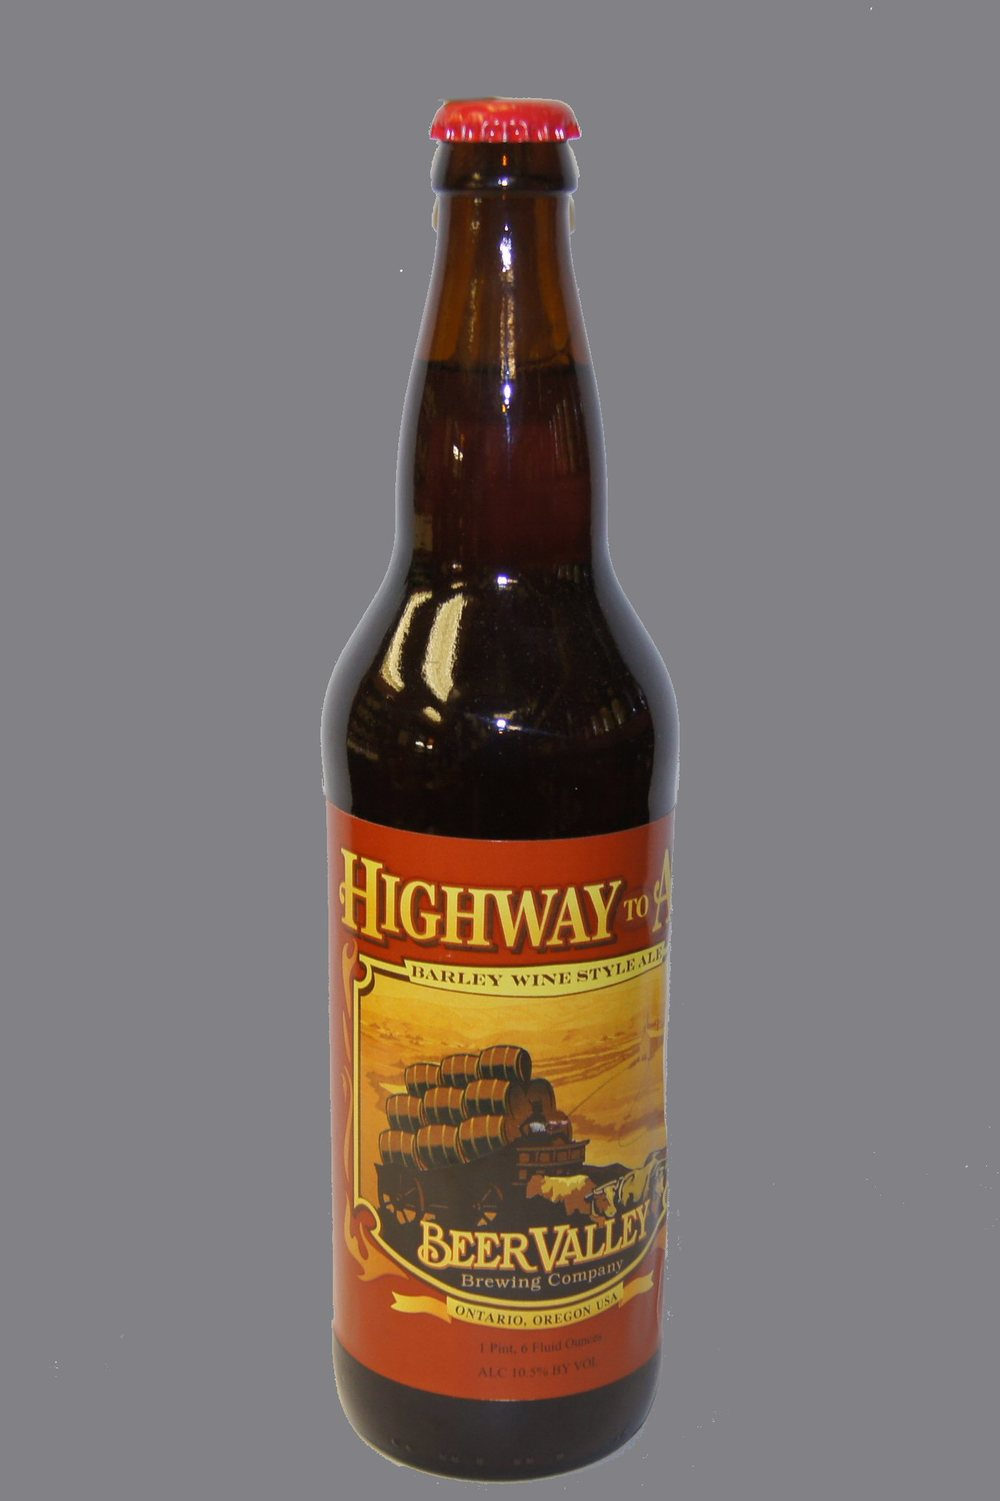 BEER VALLEY -Highway to Ale ,Barley Wine.jpg